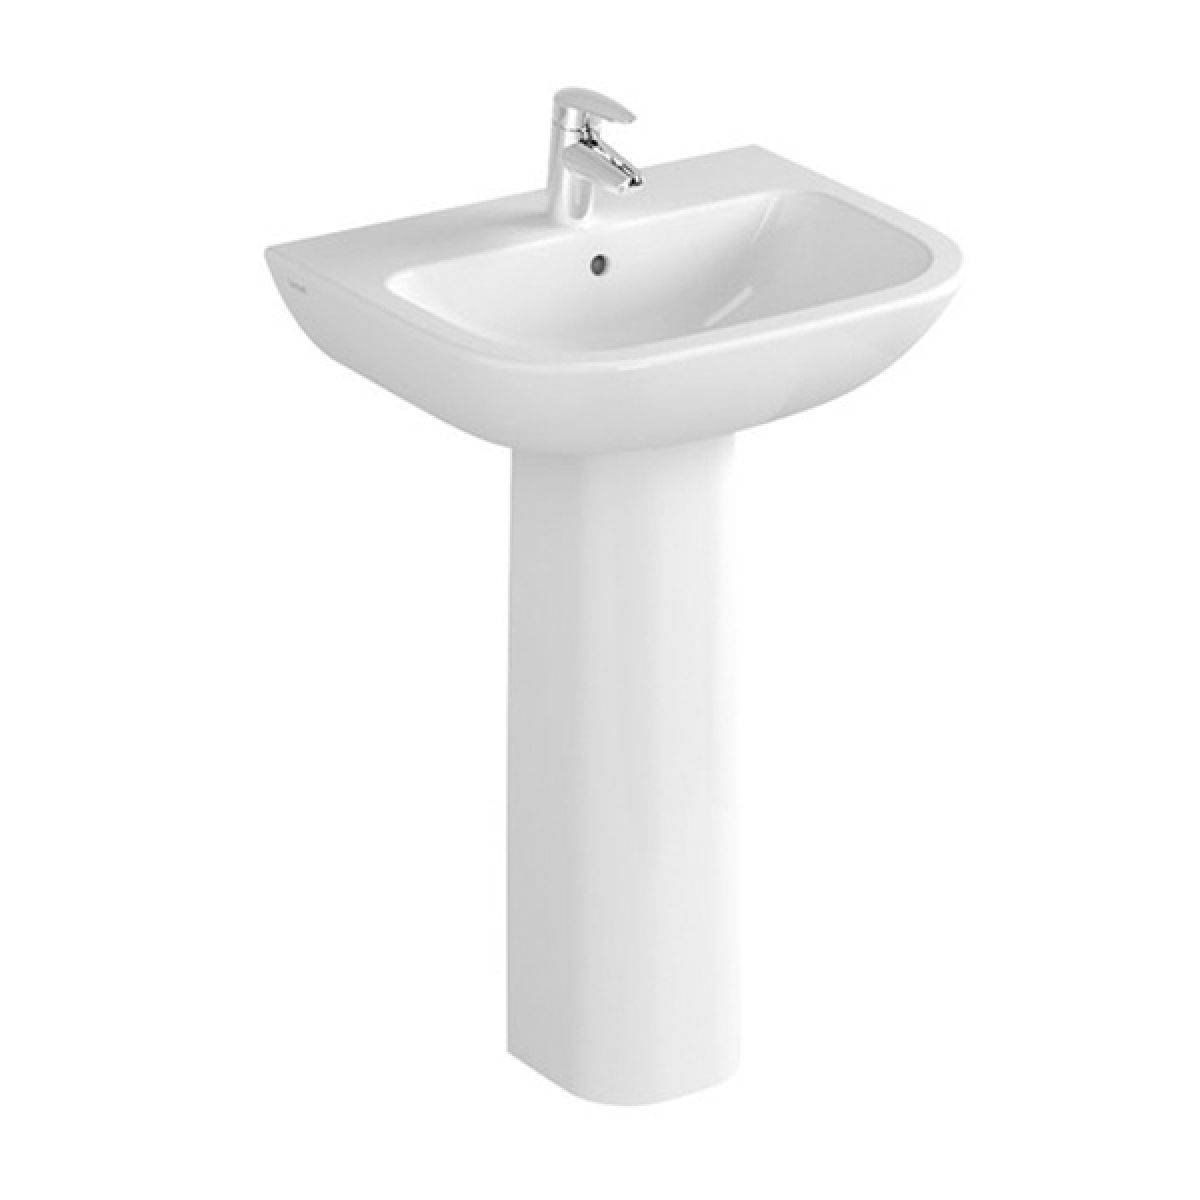 Vitra S20 2 Tap Hole Cloakroom Basin with Full Pedestal 450mm